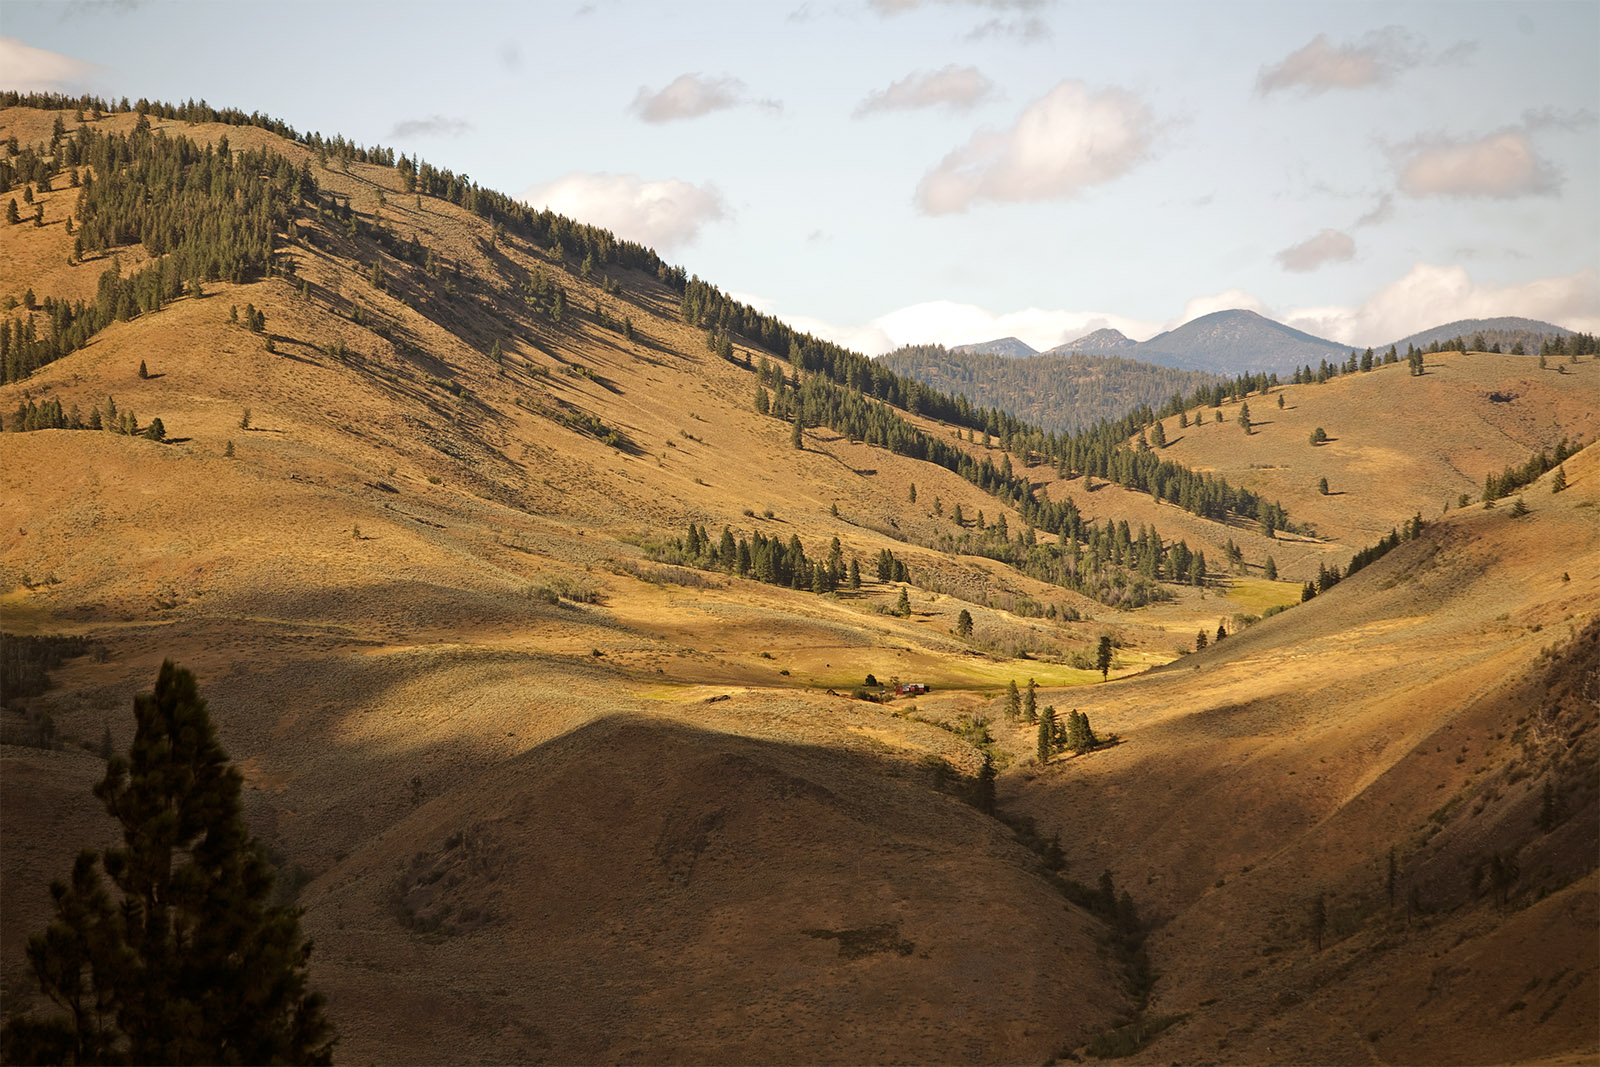 Methow_Valley.jpg